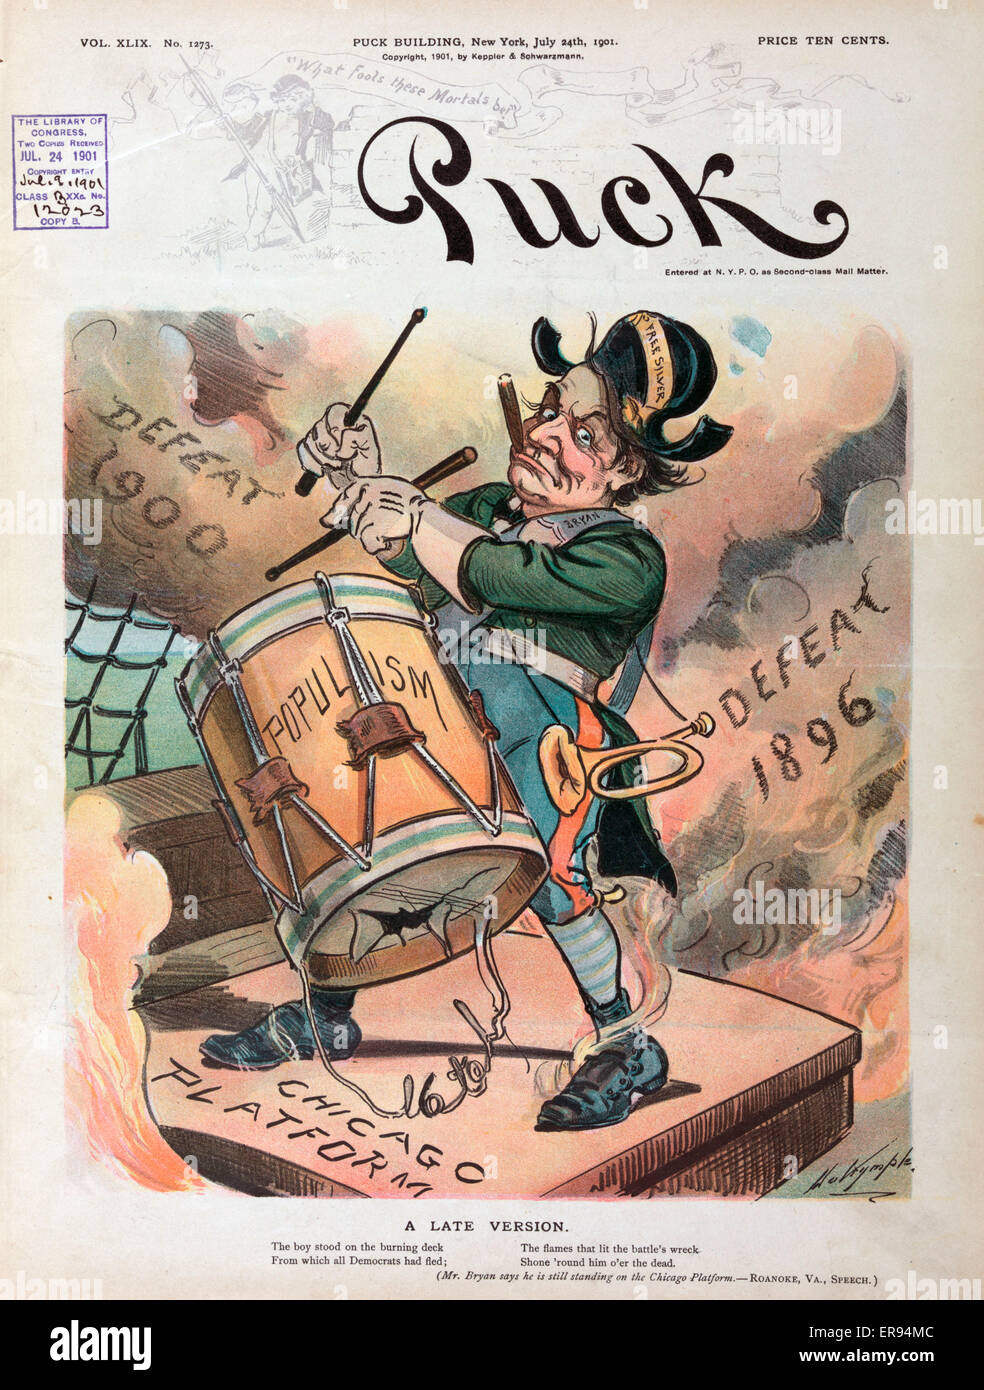 A late version. Illustration shows William Jennings Bryan playing a drum labeled Populism while standing on a hatch - Stock Image